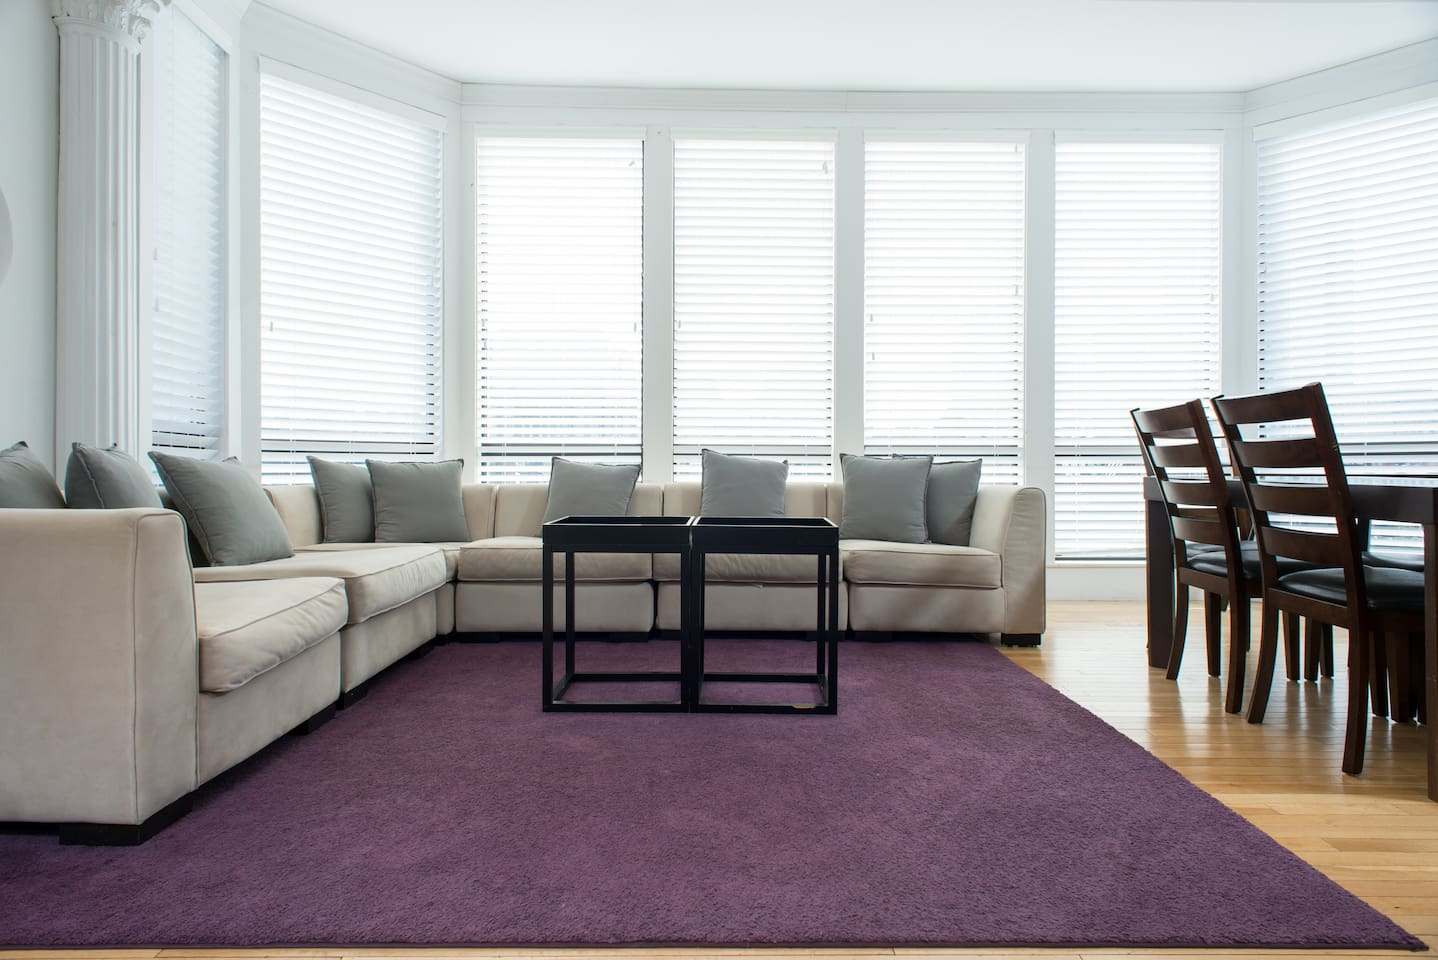 1300] 3BR, Multi-Level, Penthouse in Back Bay - Serviced apartments ...